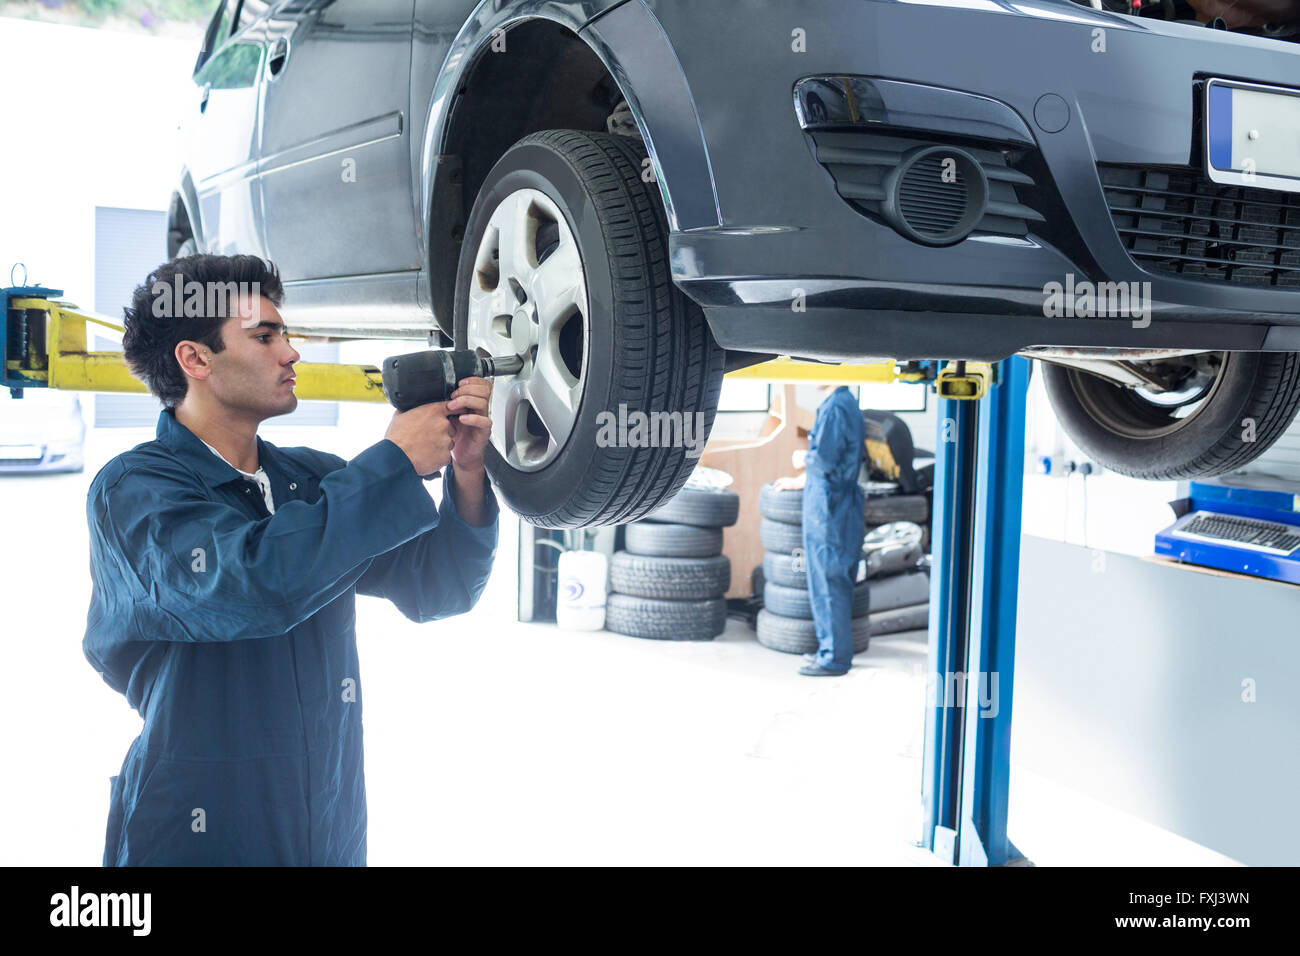 Mechanic fixing a car wheel - Stock Image